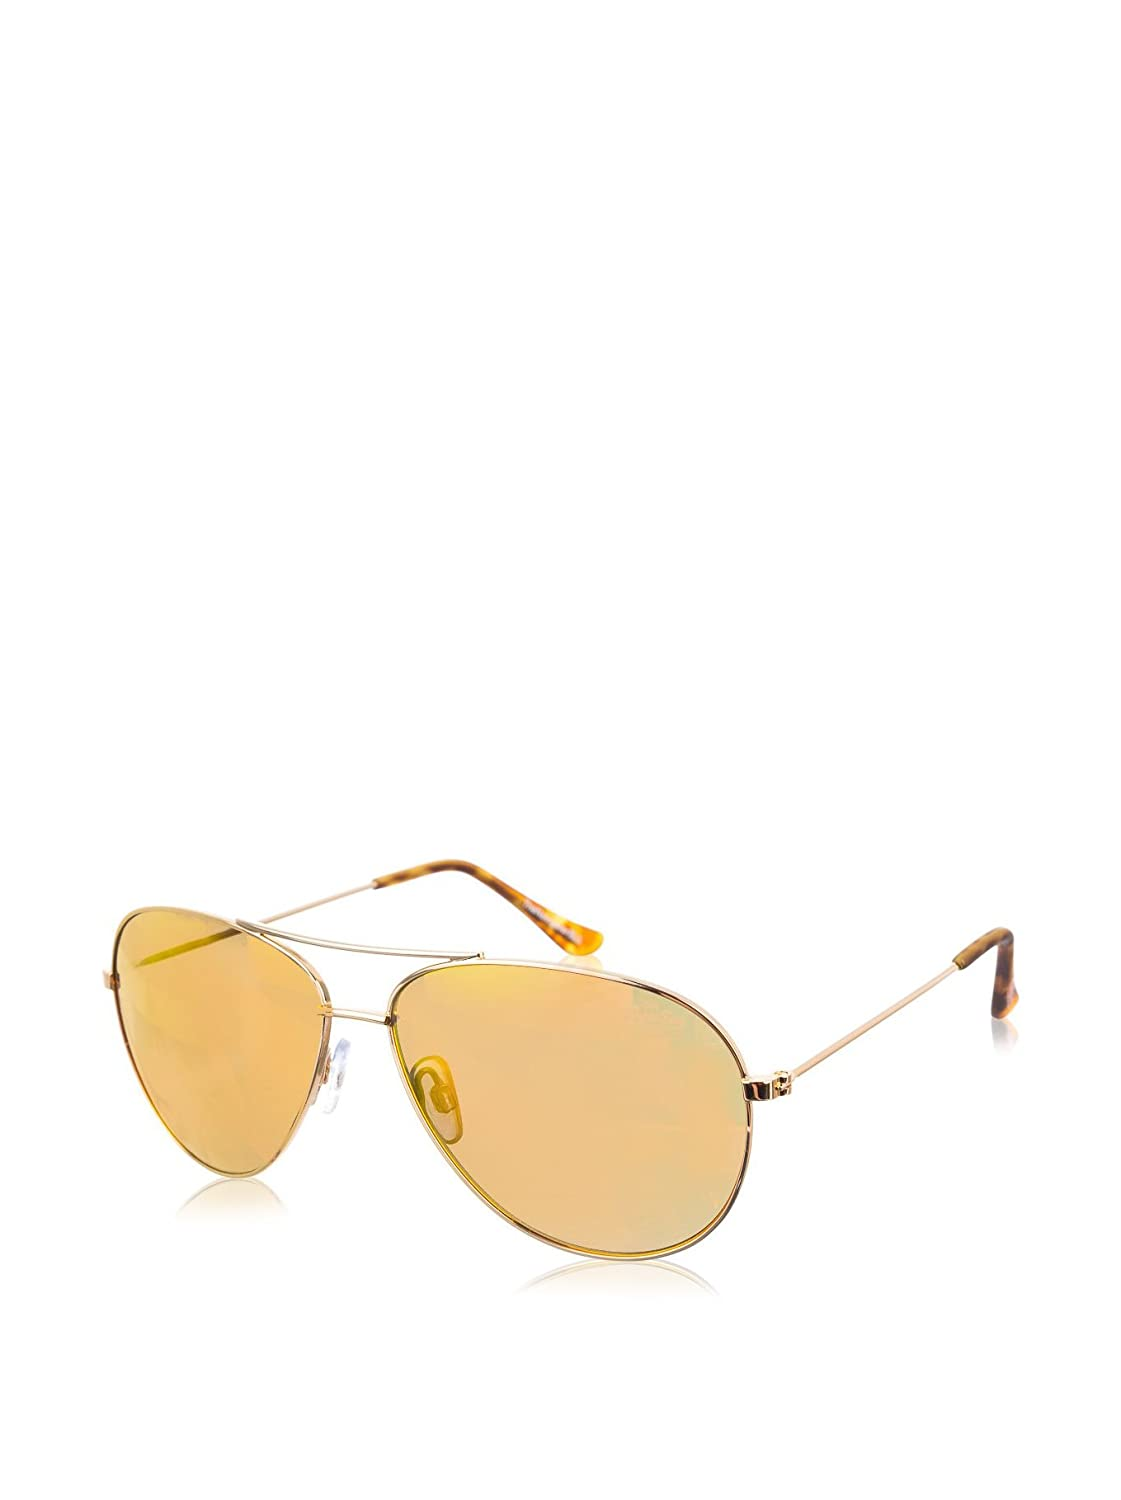 Superdry Gafas de Sol (53 mm) Dorado: Amazon.es: Ropa y ...